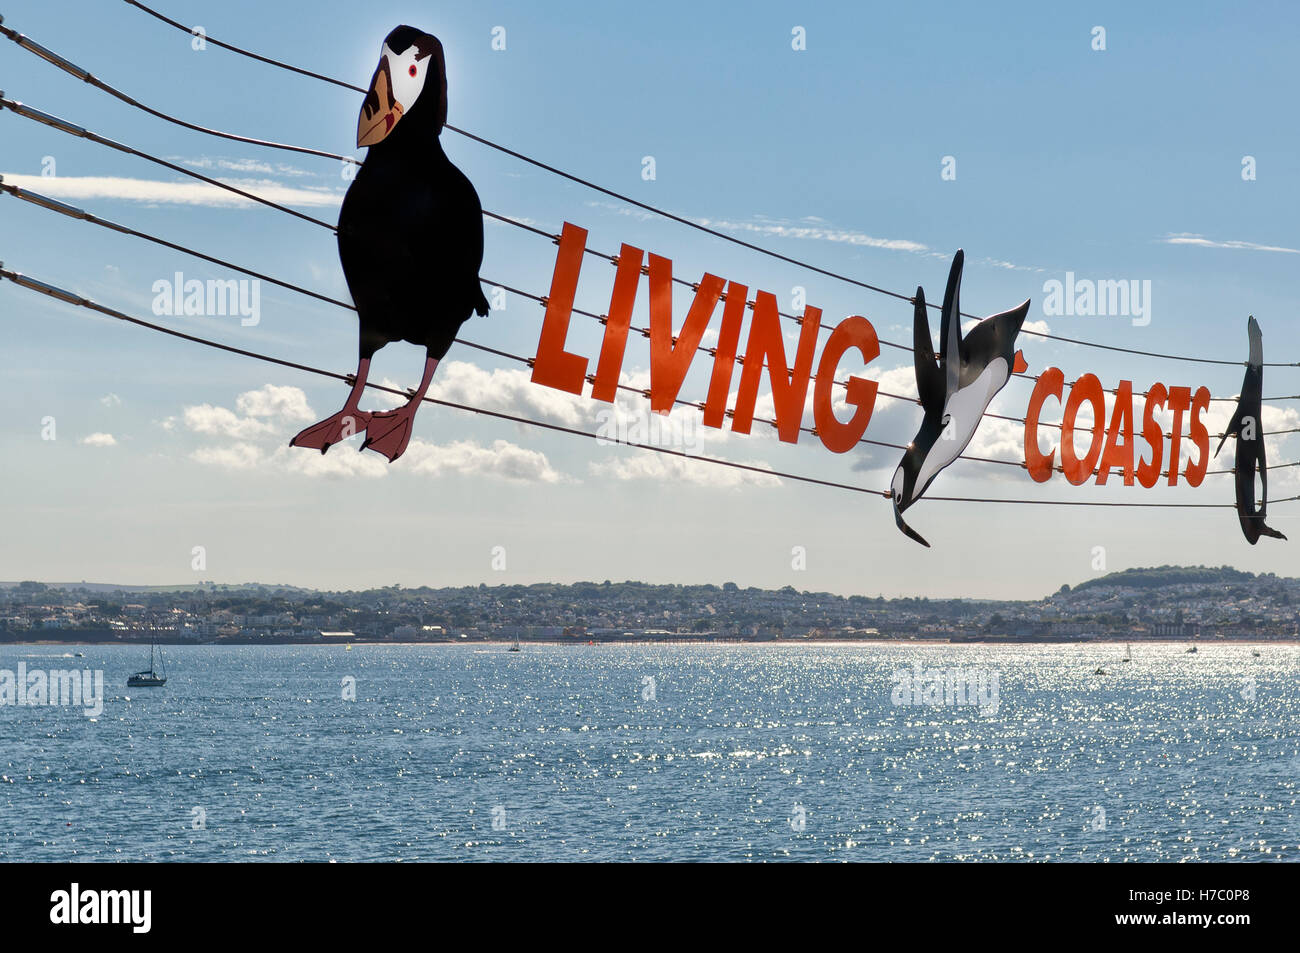 Colourful suspended sign for 'Living Coasts' in Torquay, Devon UK against a sunny blue sky in Summer. - Stock Image